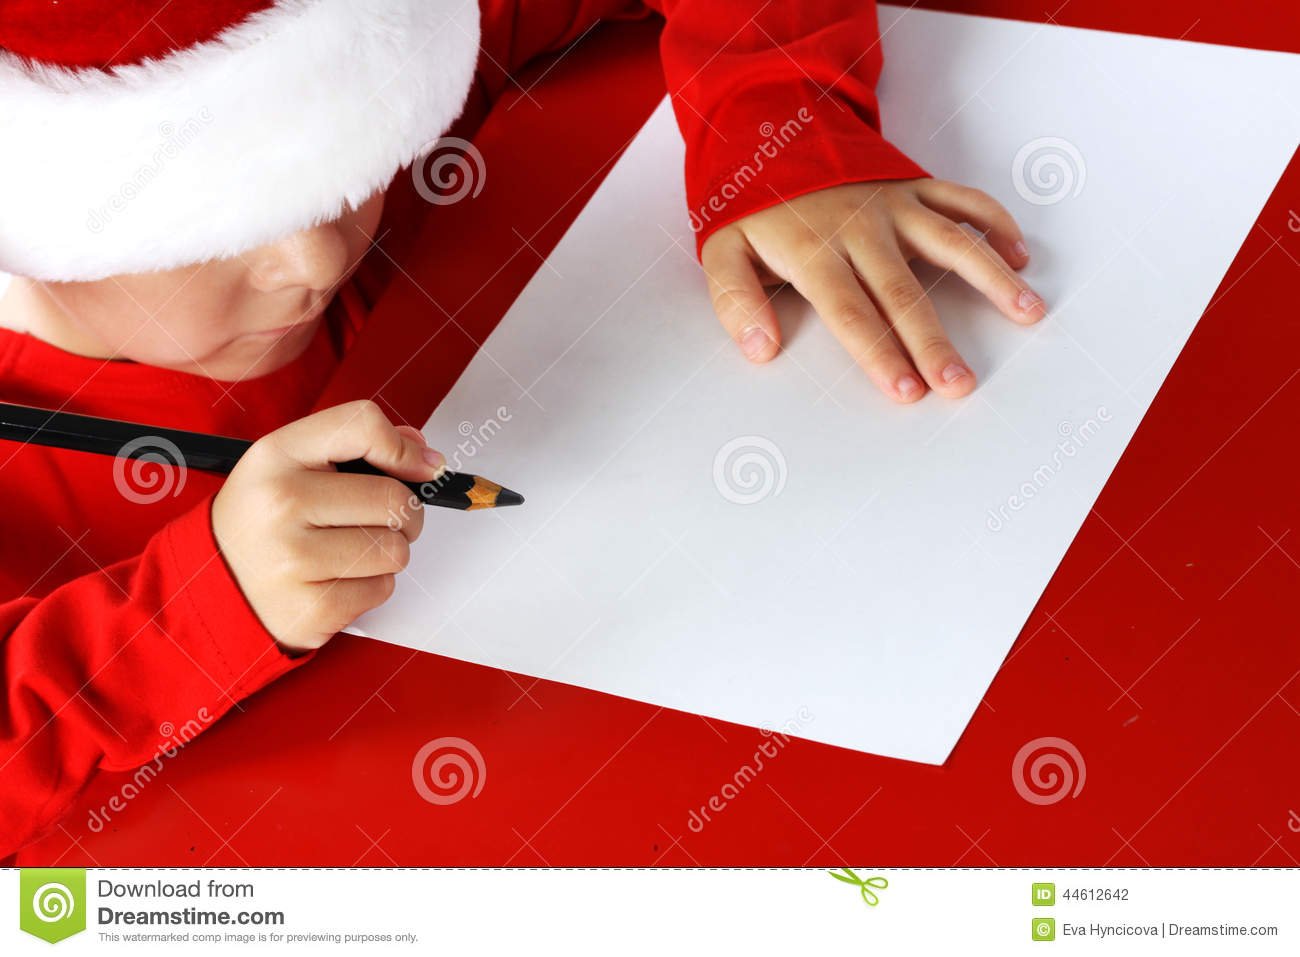 childhood christmas to adulthood christmas essay Brooke boyd english/comp mrs goslin 31 march 2014 childhood christmas to adulthood christmas christmas as a child for me was very fun i got many presents from santa as well as many from relatives.